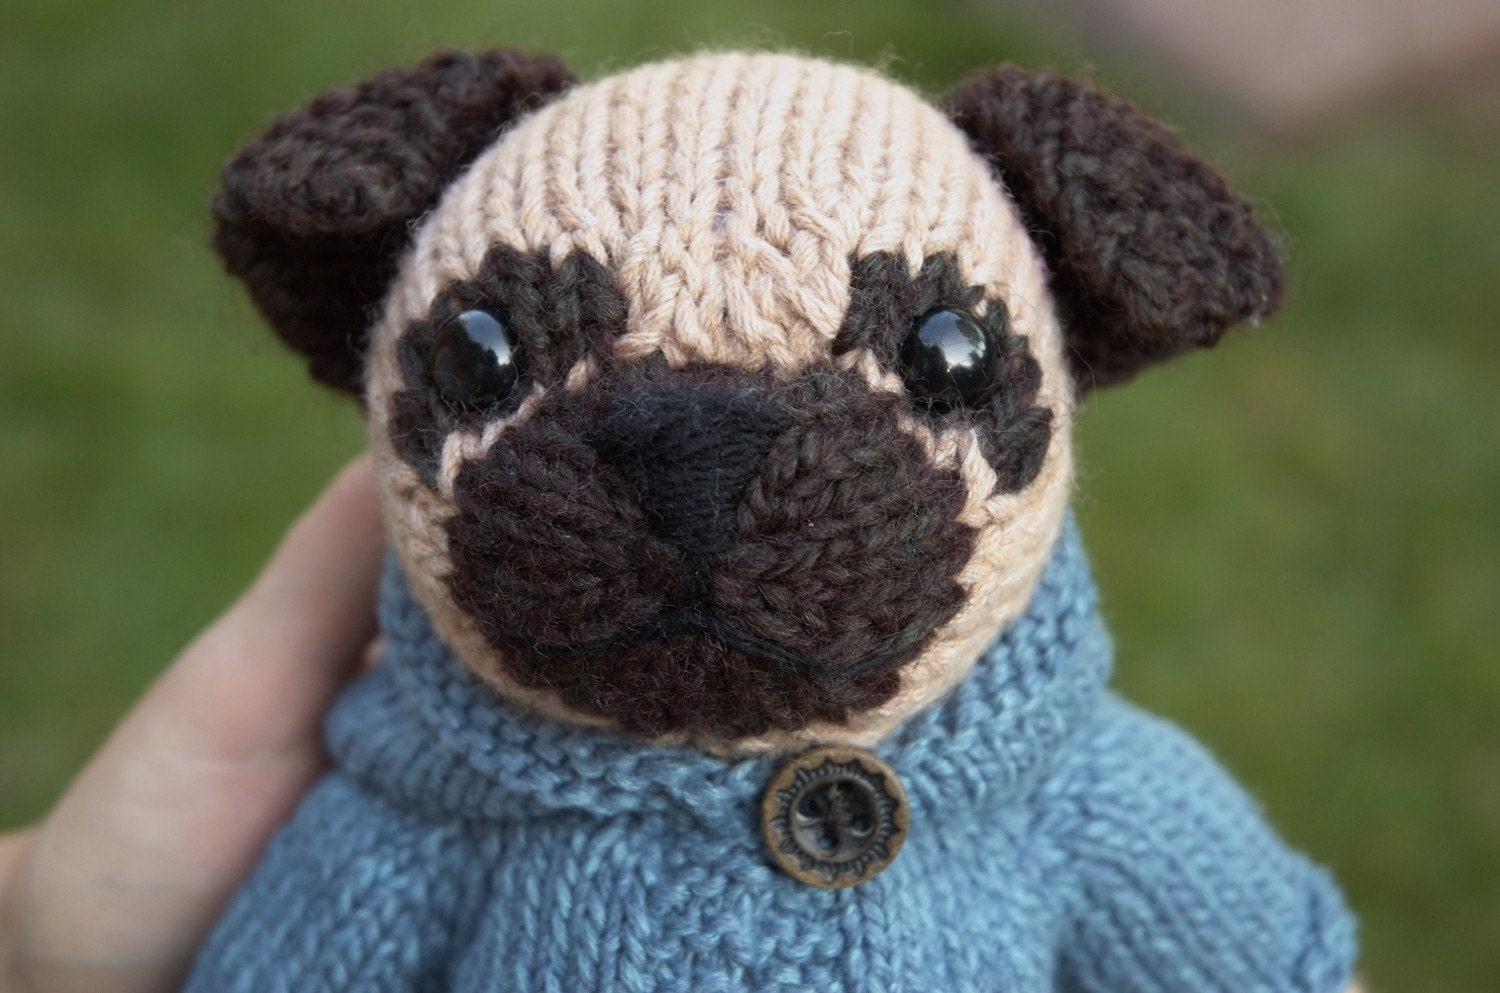 Pug with Anorak Knitting Pattern from fuzzymitten on Etsy Studio